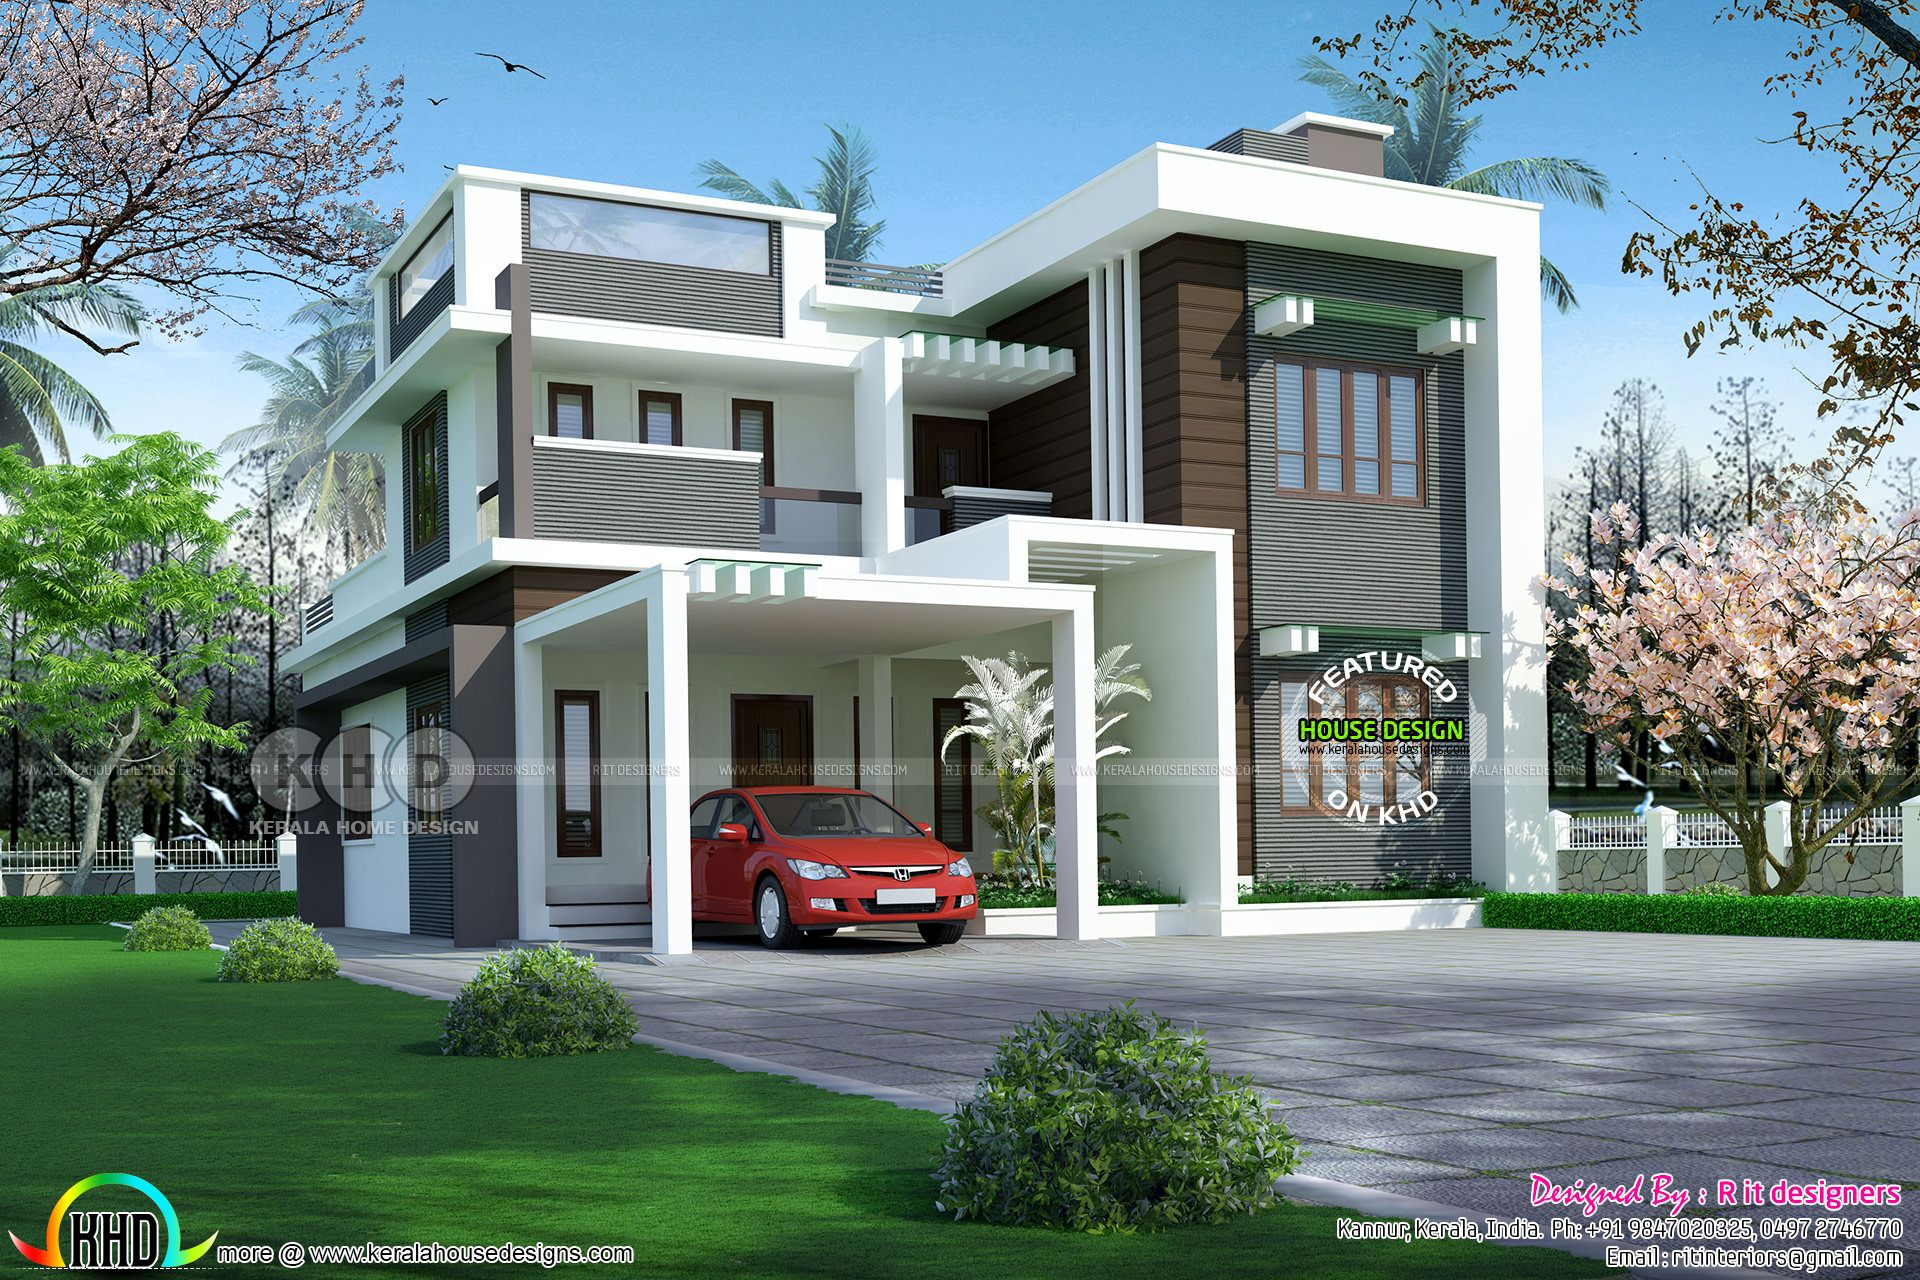 2896 Sq Ft 4 Bedroom Contemporary Flat Roof Home Kerala House